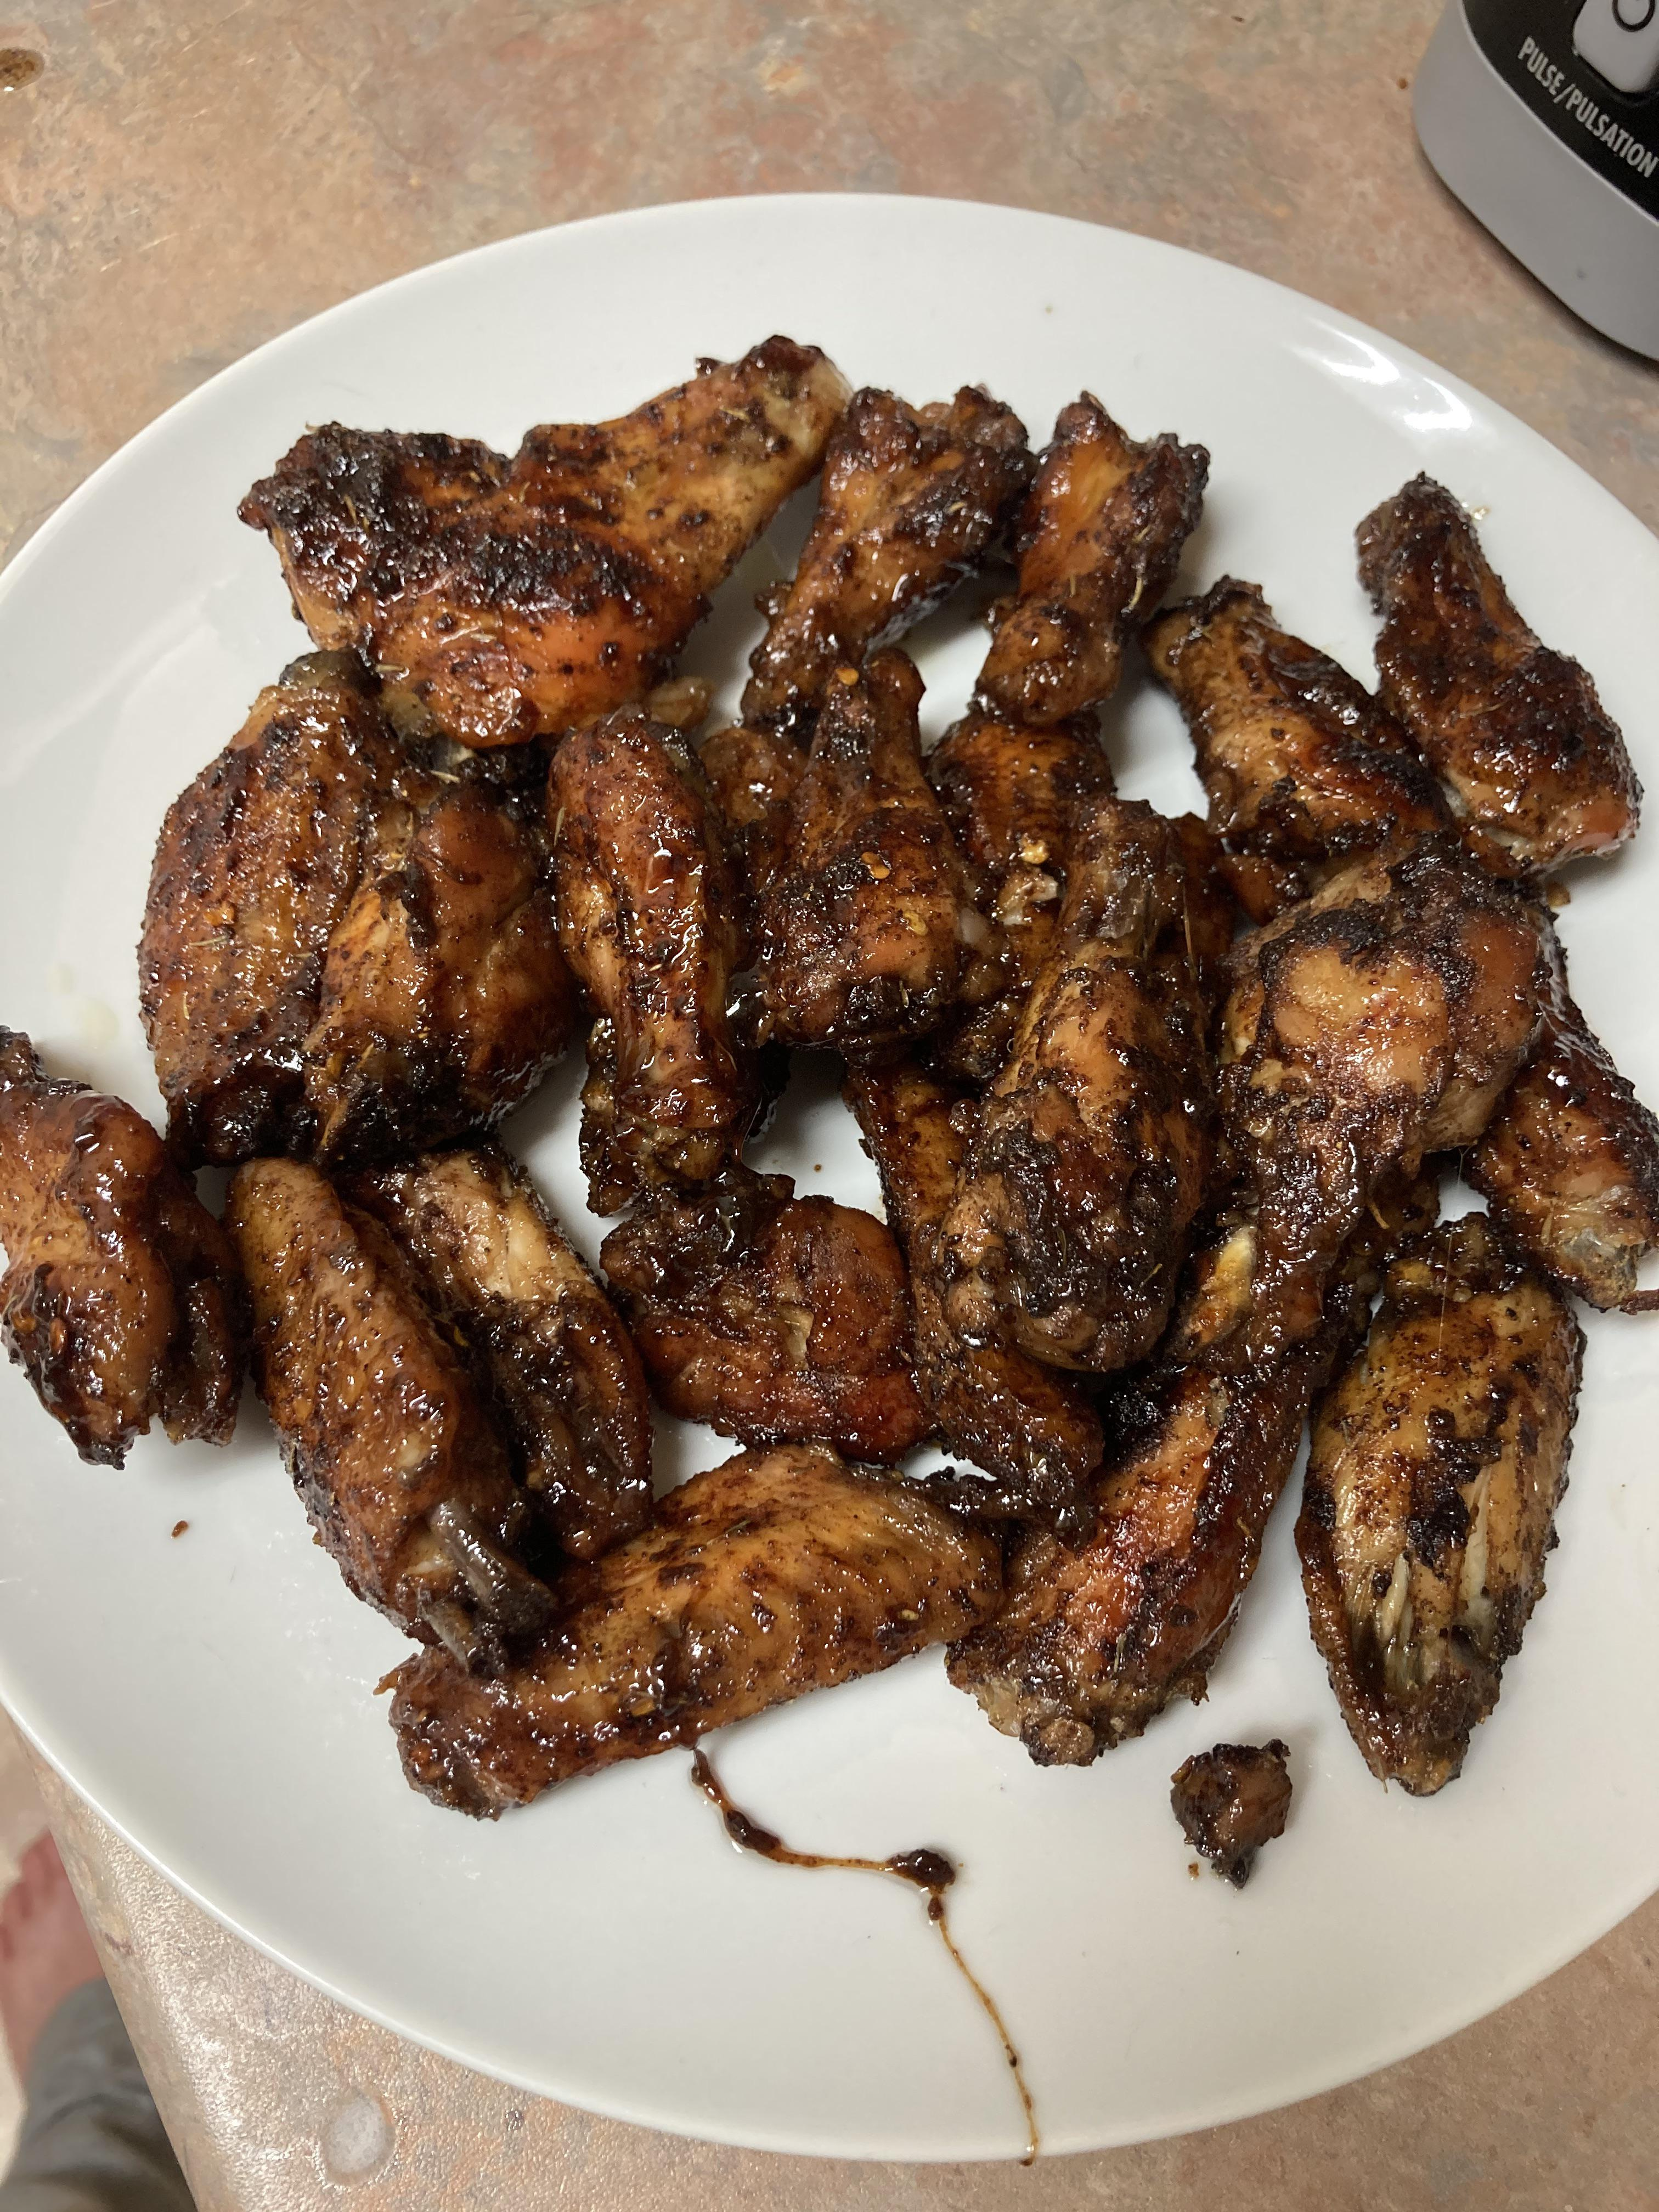 Maple Jerk Chicken Wings with real maple syrup and dry jerk seasoning